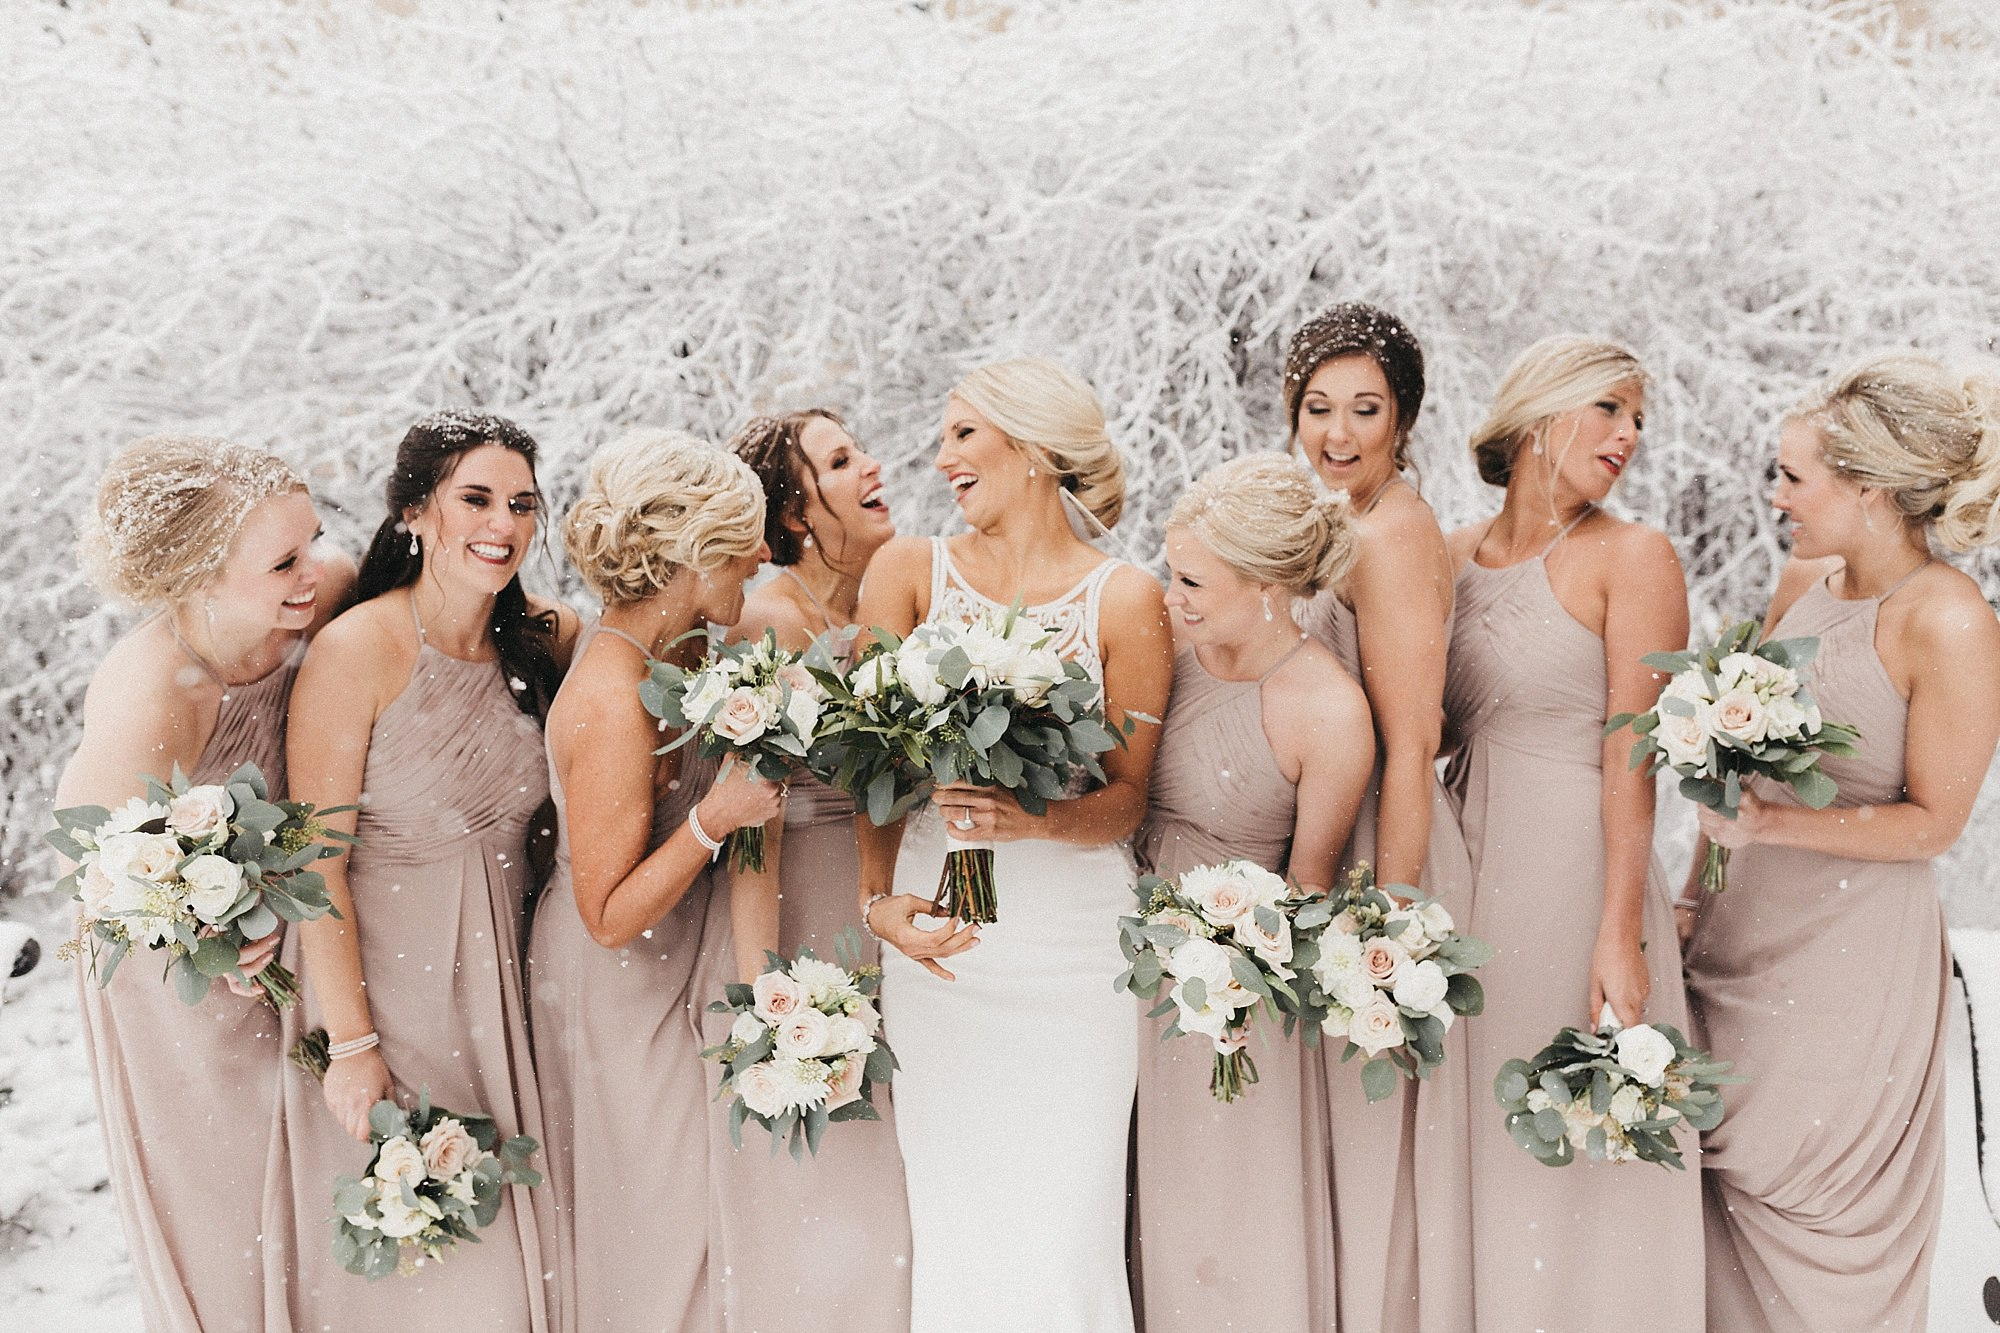 bridal party in the snow at winter Maytag center wedding in newton Iowa